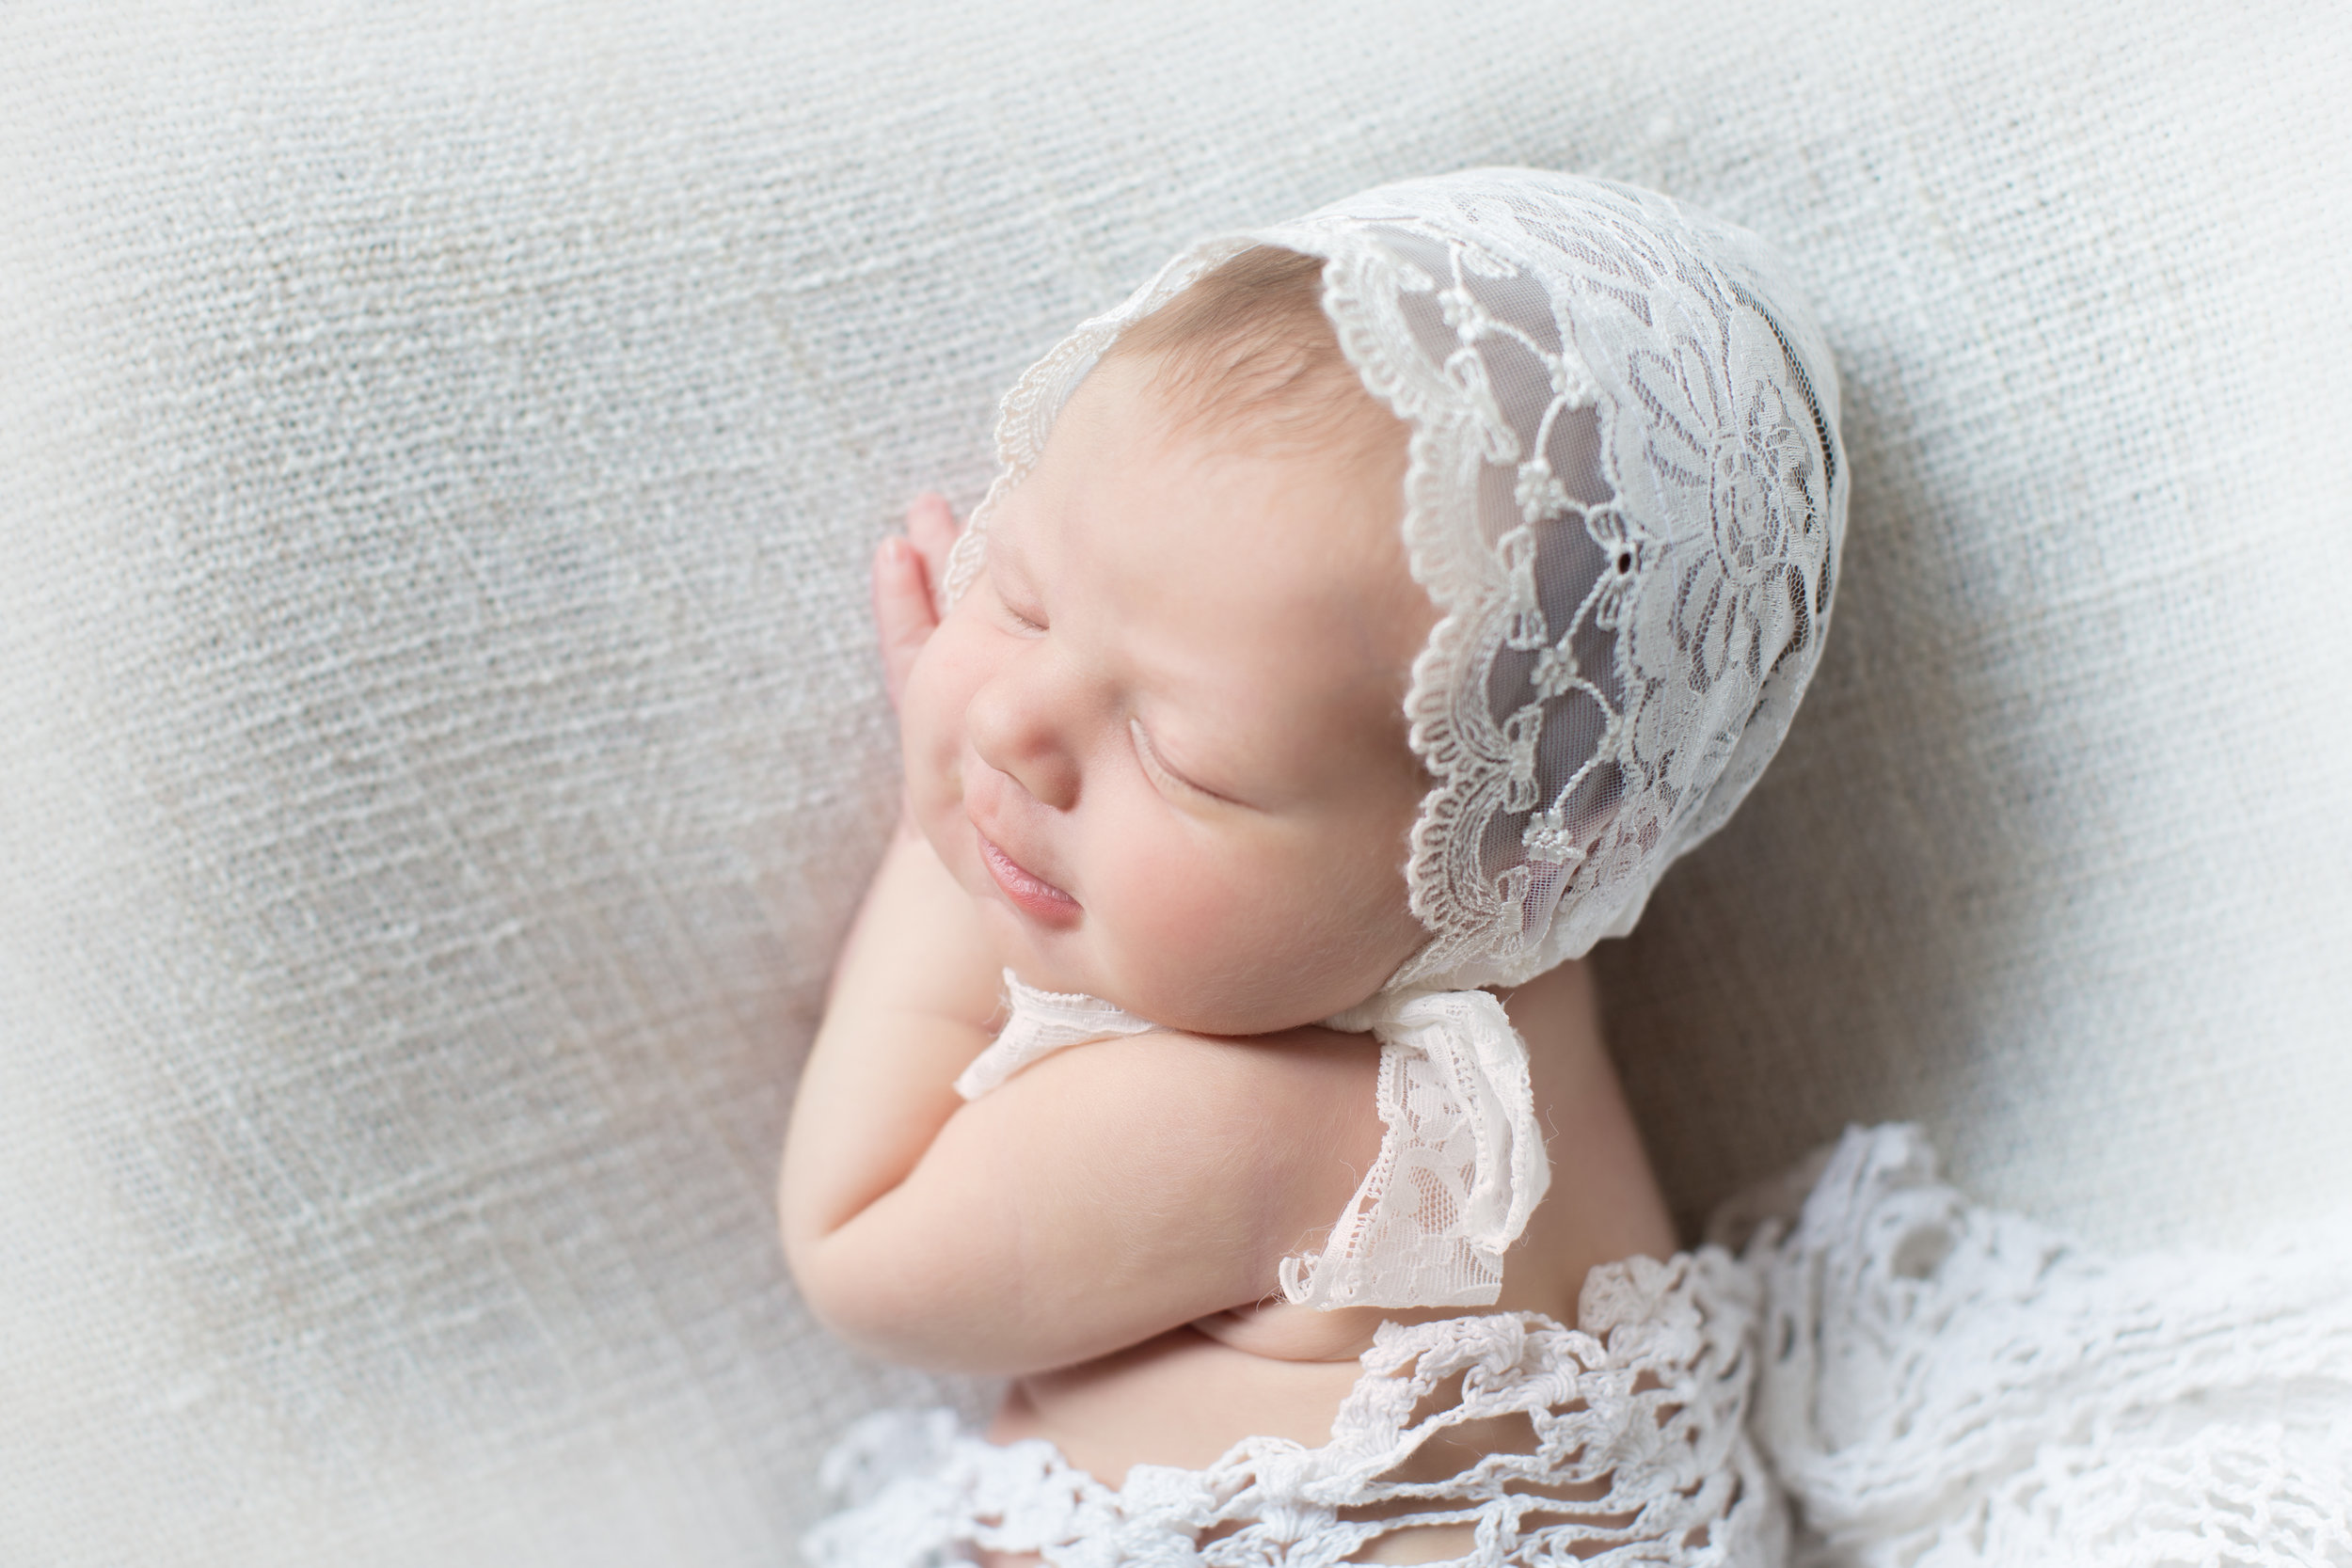 Portrait of a beautiful newborn baby girl in a white bonnet smiling on a beanbag. Calgary newborn photographer. Milashka Photography